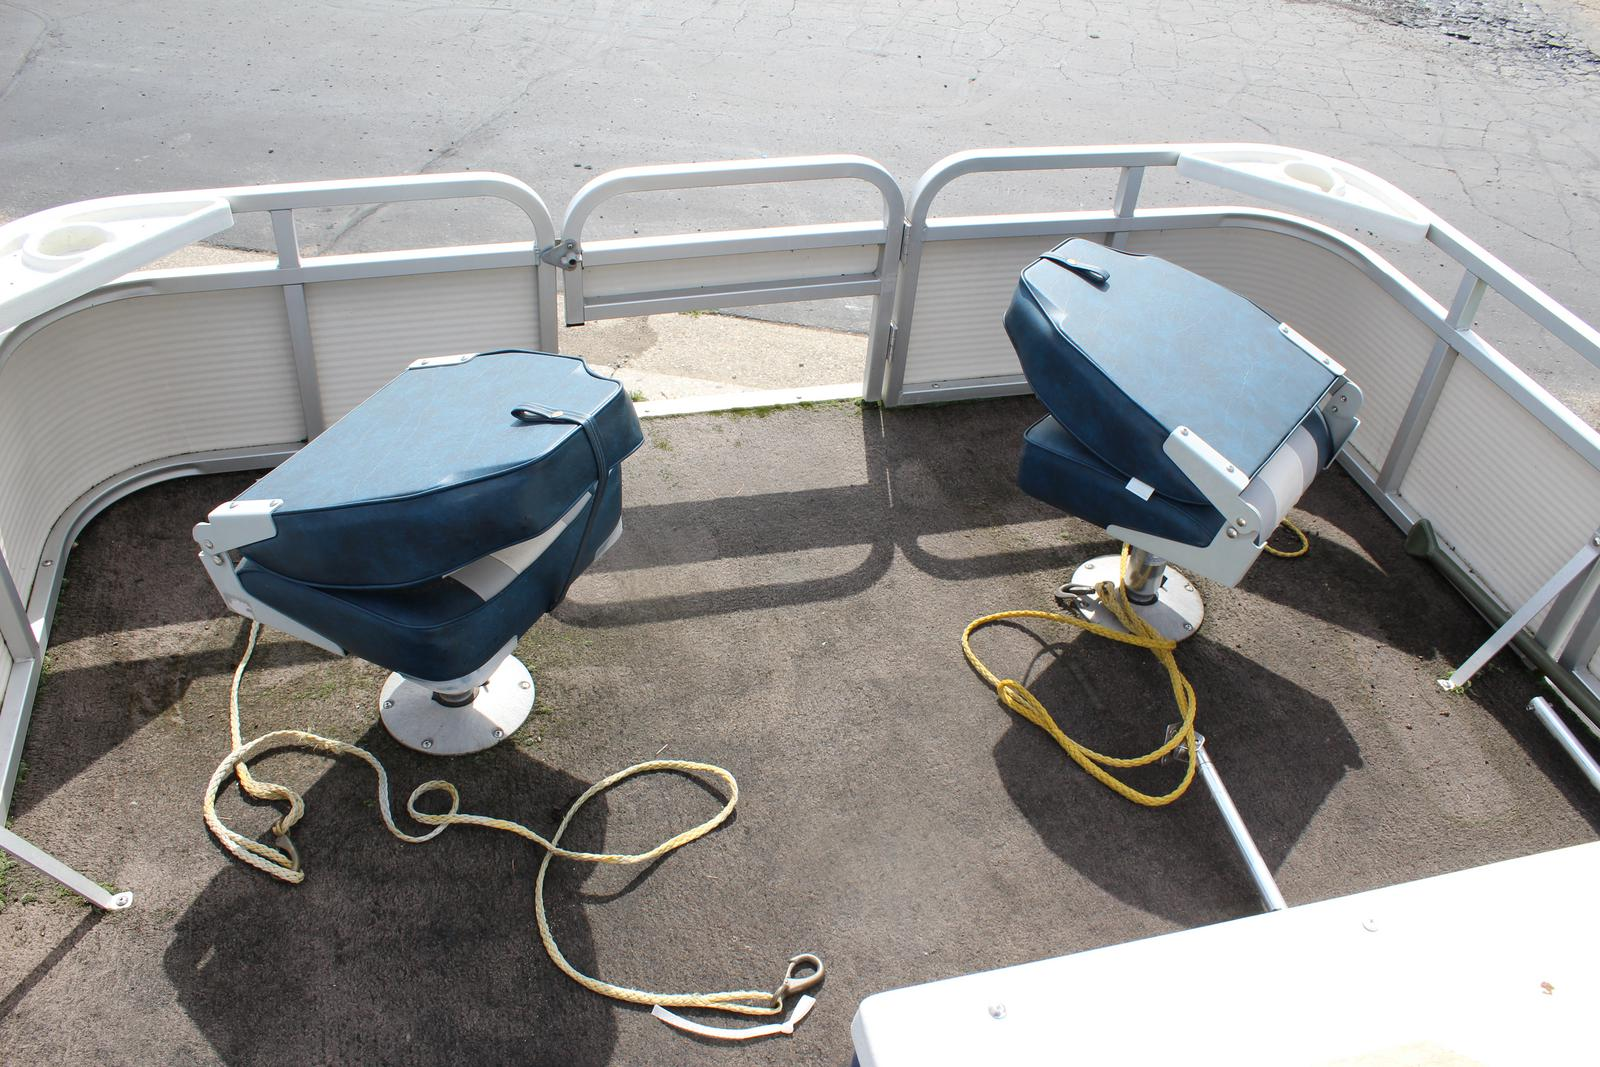 Smoker Craft 18ft Fish boats for sale - boats com